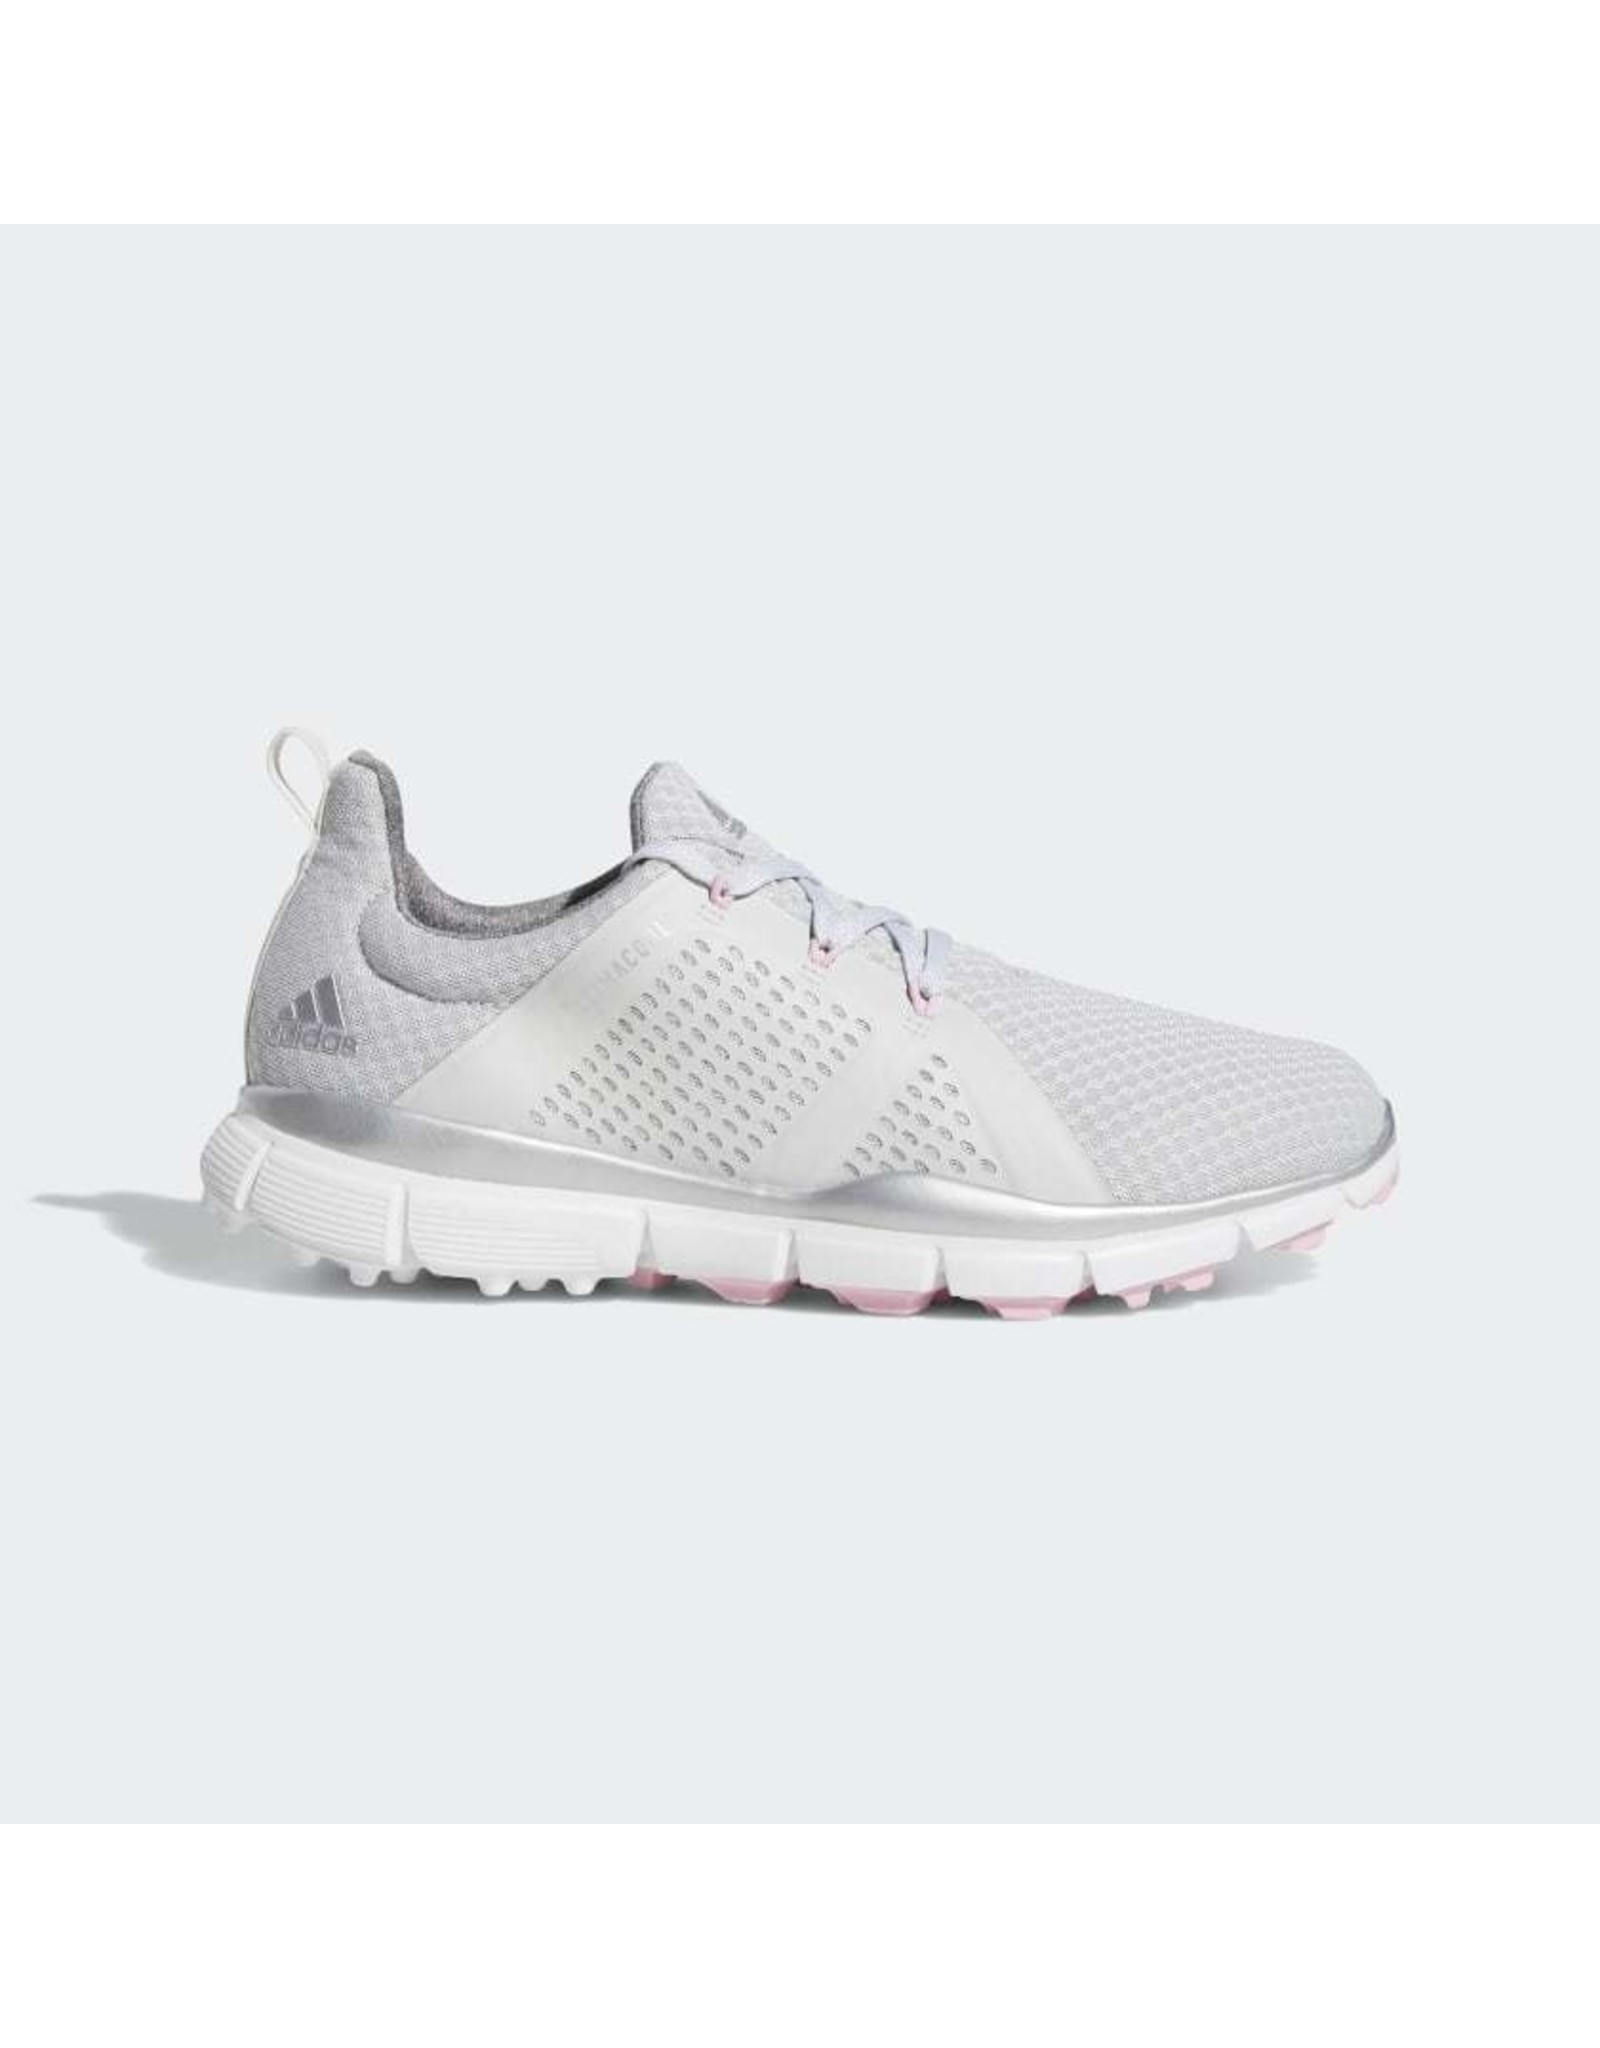 Adidas Adidas Women's Climacool Cage Silver/Pink